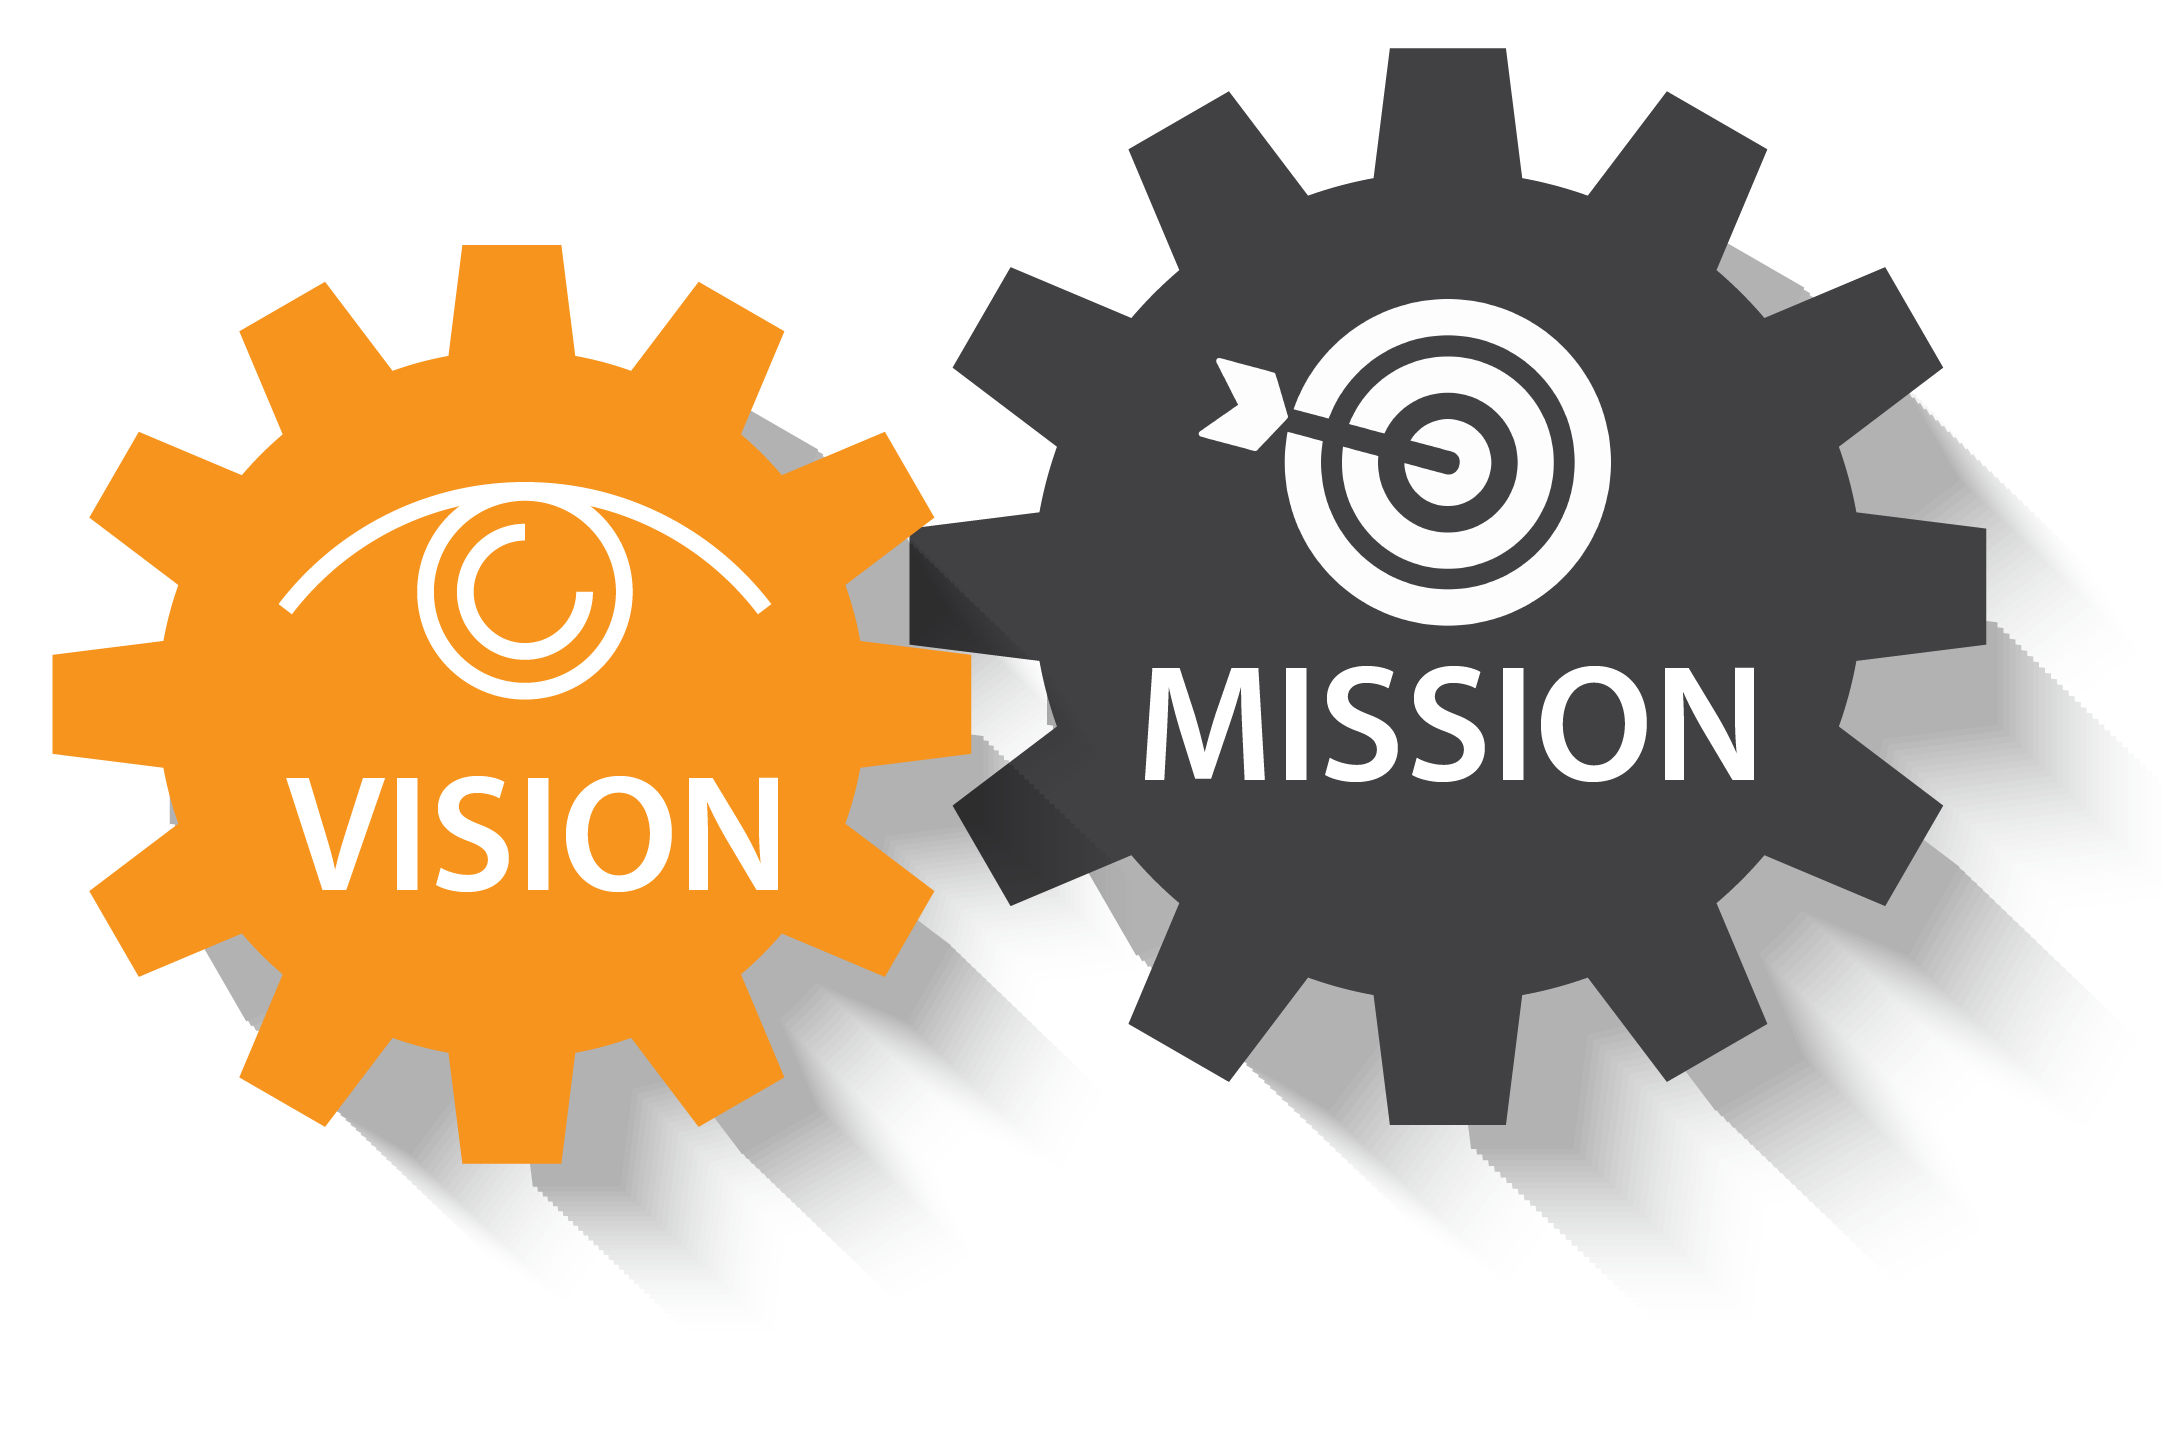 Missions clipart service project. Cecsajdi consulting engineering center